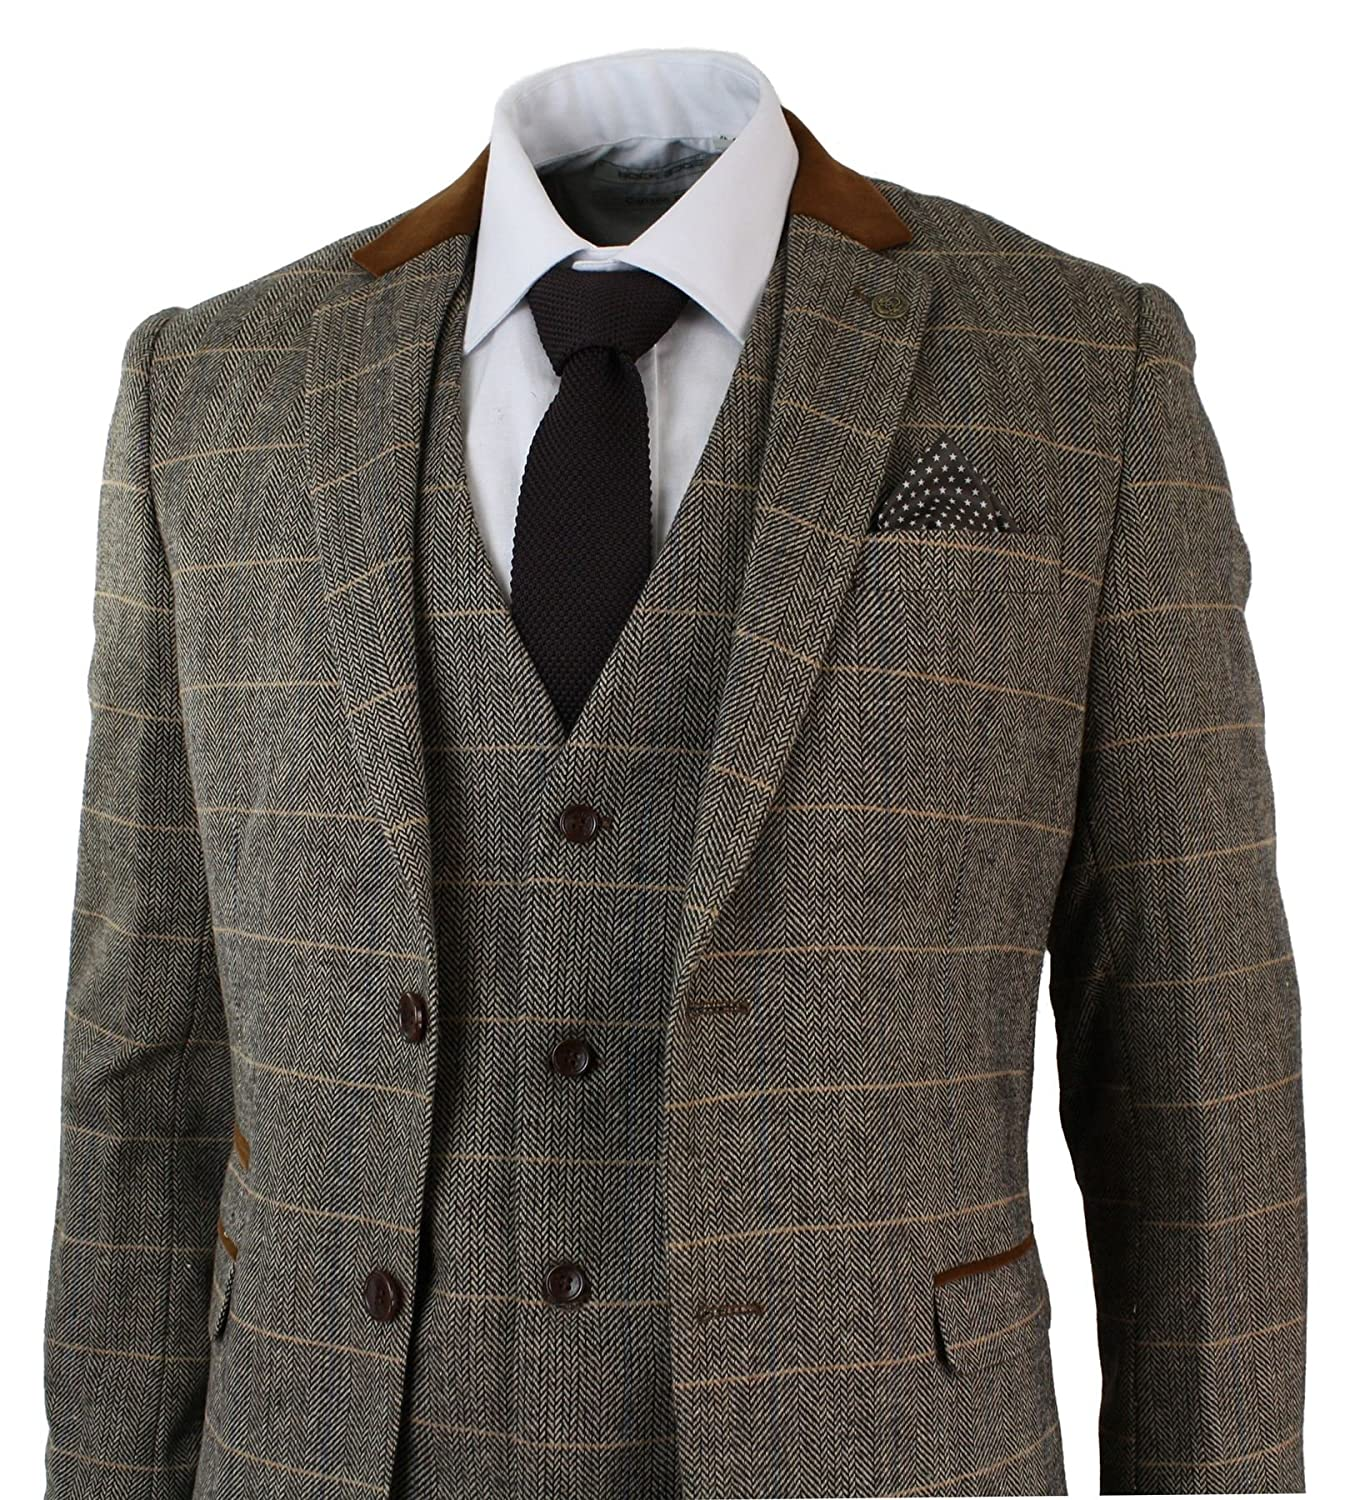 Marc Darcy Mens Check Vintage Herringbone Tweed Tan Brown 3 Piece ...